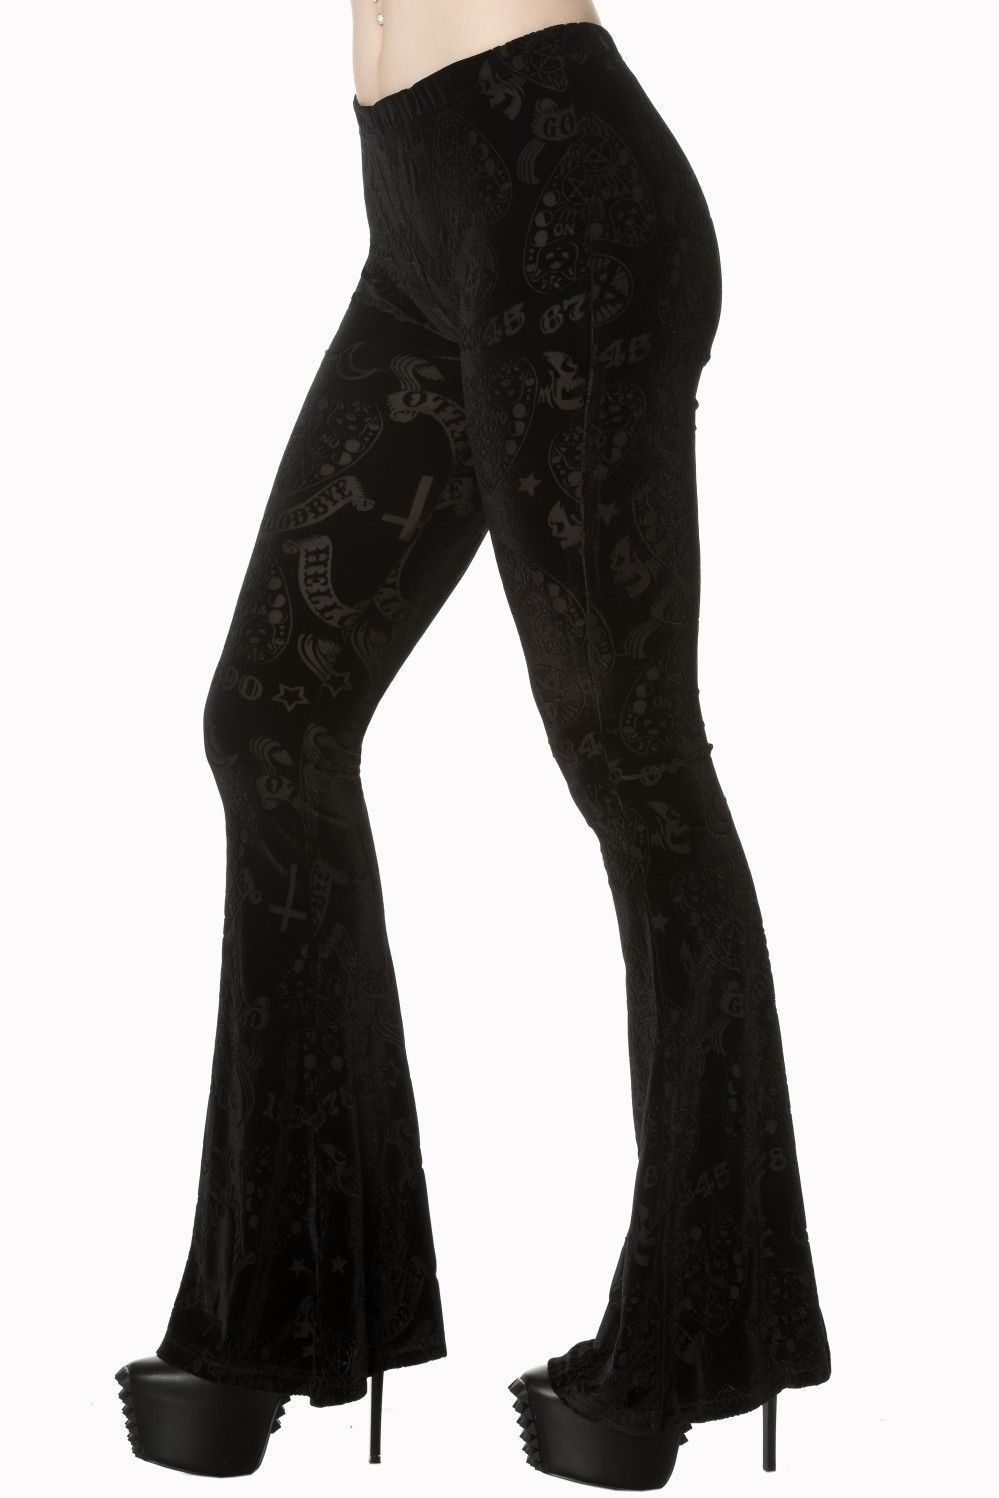 e75030e5edb2e Black Velvet Ouija Board design burnout pants. Witchy - Gypsy Goth style  Flared Bottom Pants. In stock and ready to ship!  gothic  gothicfashion   Witchcraft ...